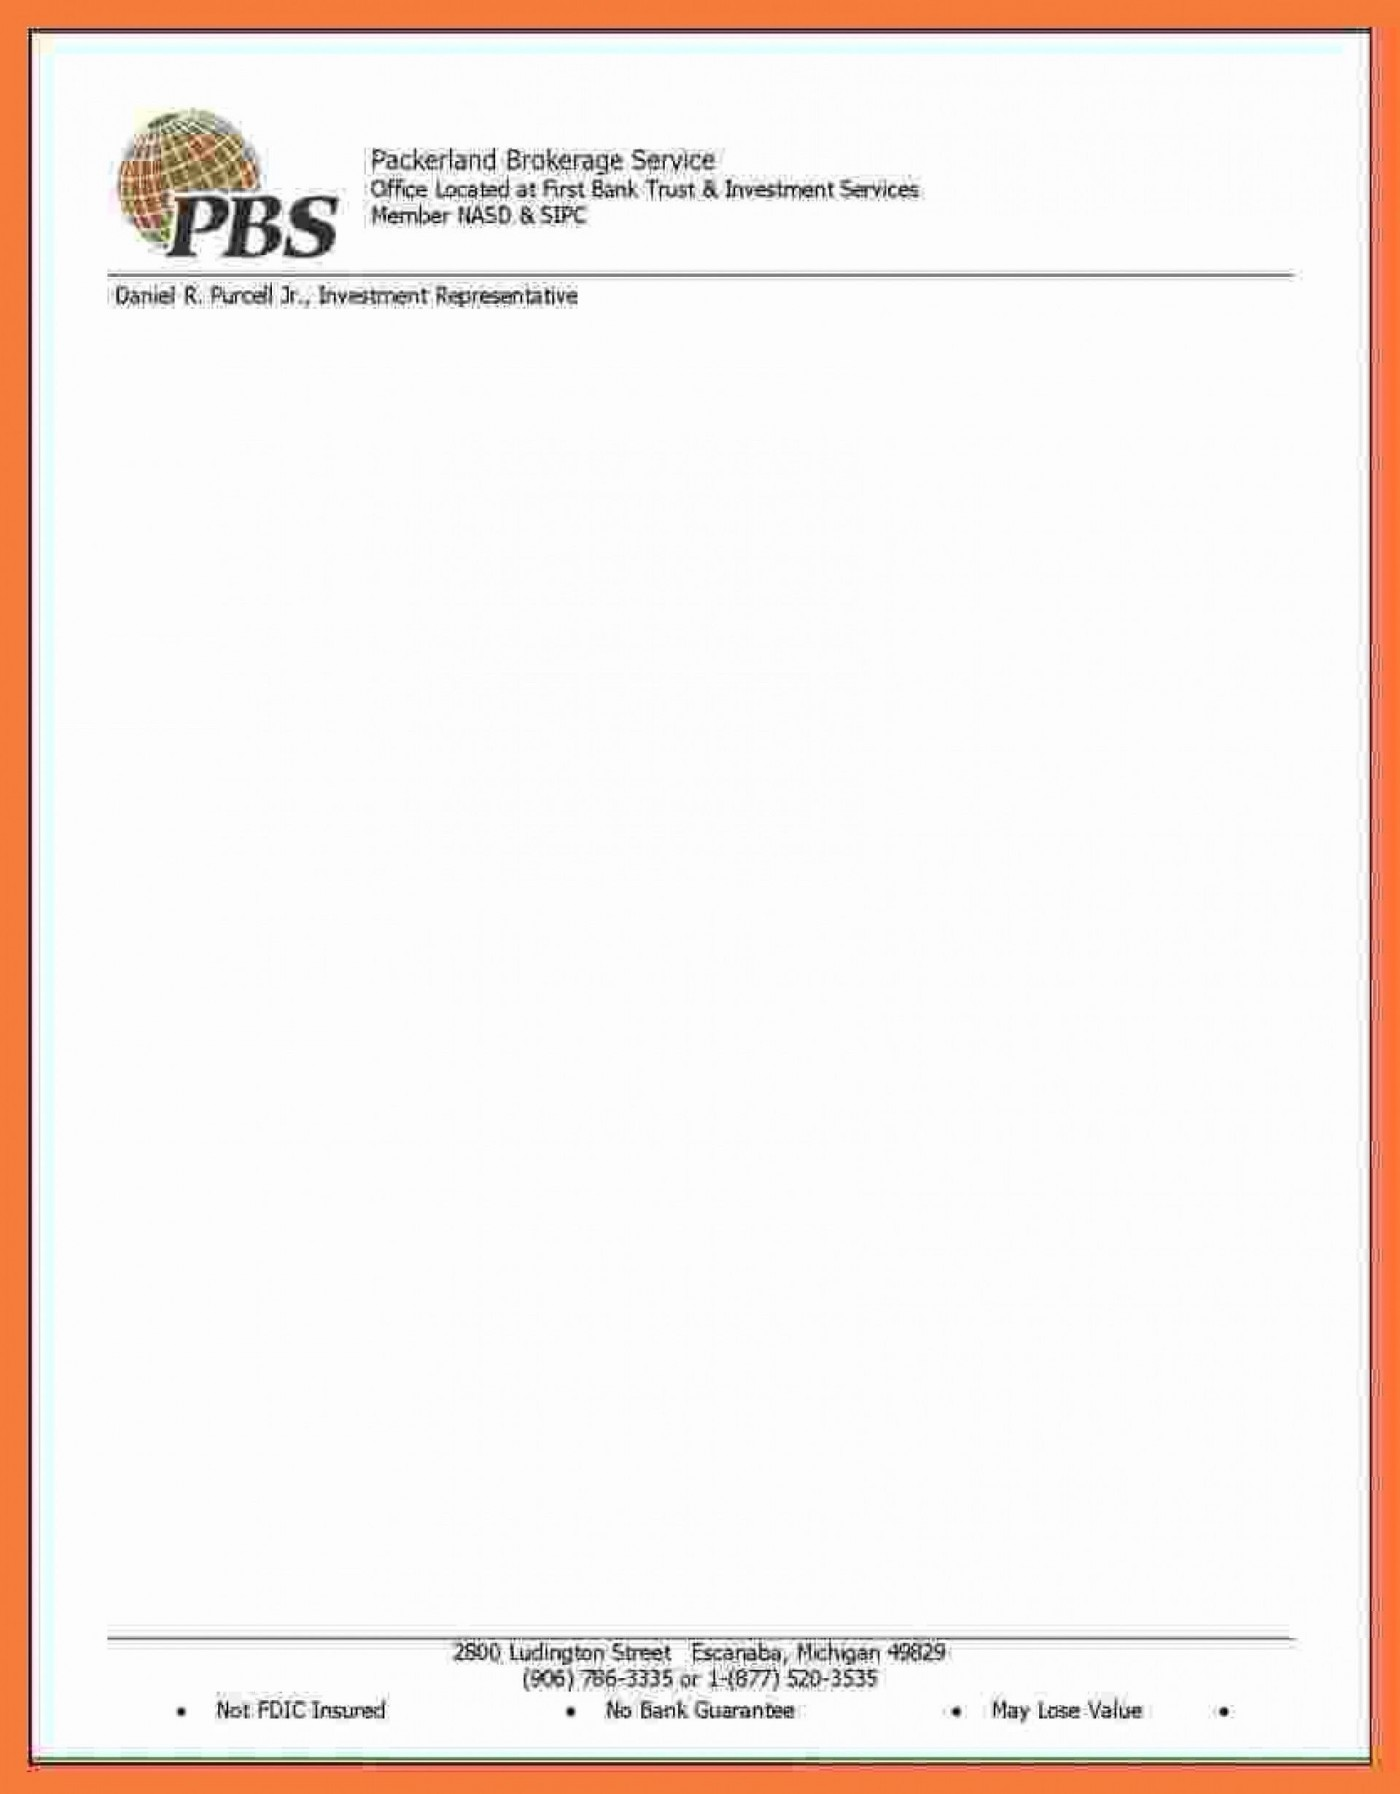 001 Remarkable Letterhead Sample Free Download Inspiration  Template Ai Microsoft Word Restaurant1400